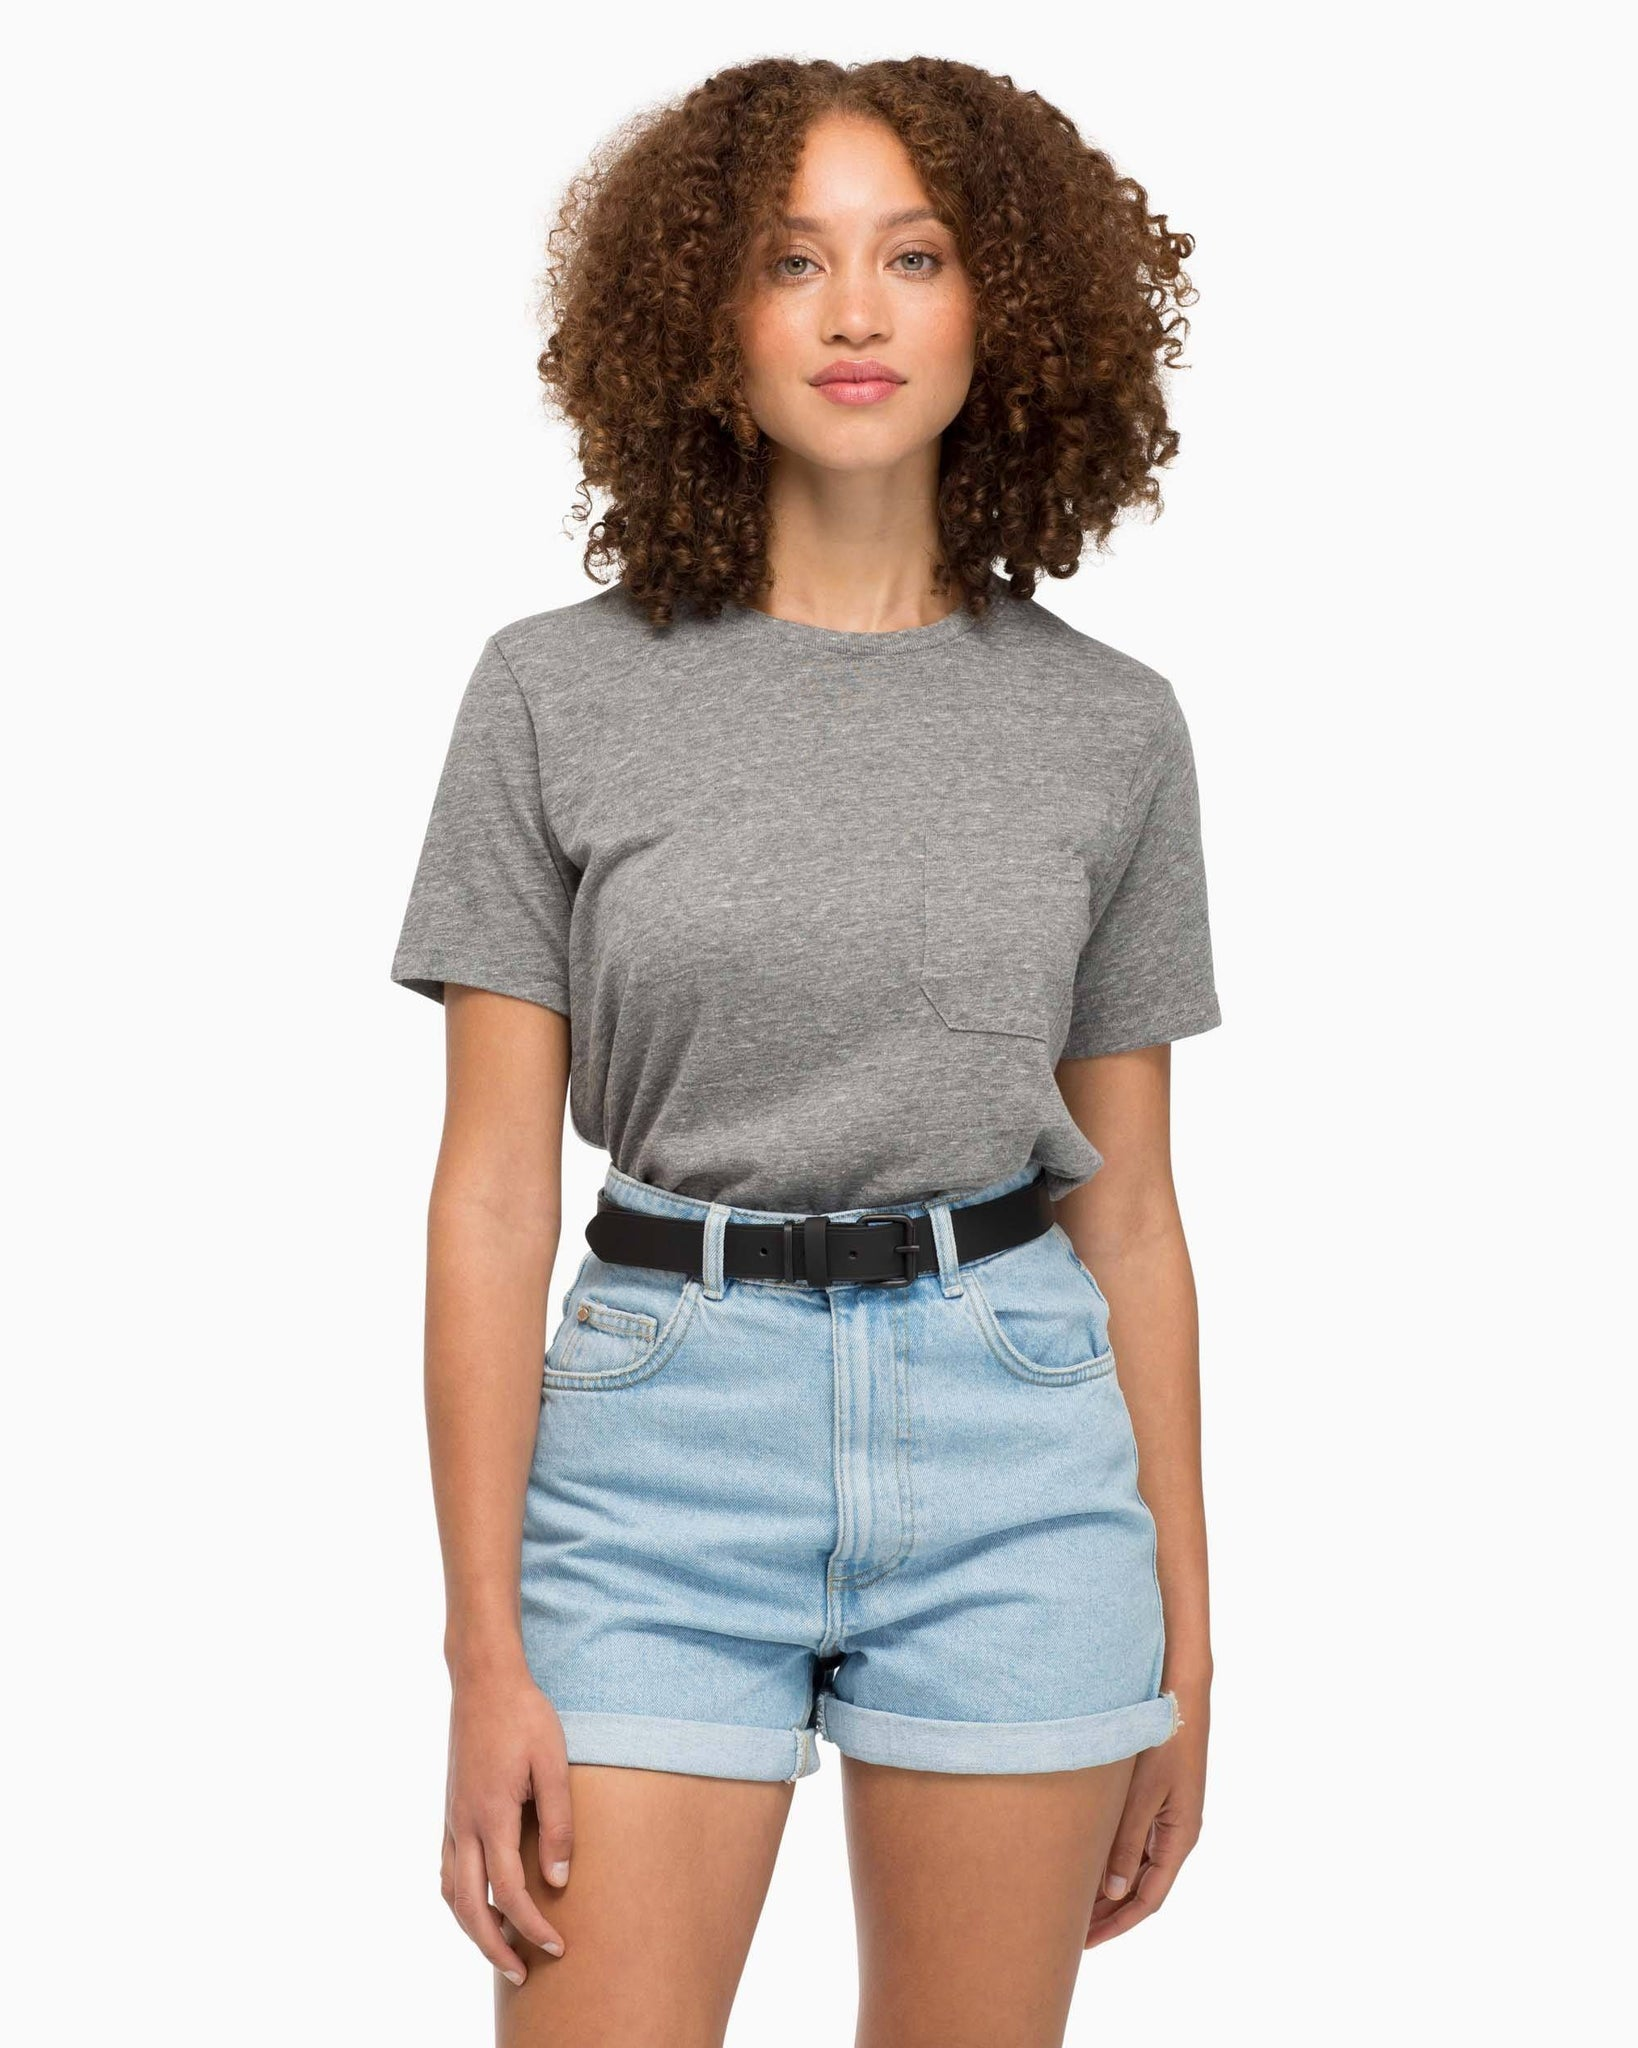 Women's Pocket Crew Tee - Heather Grey